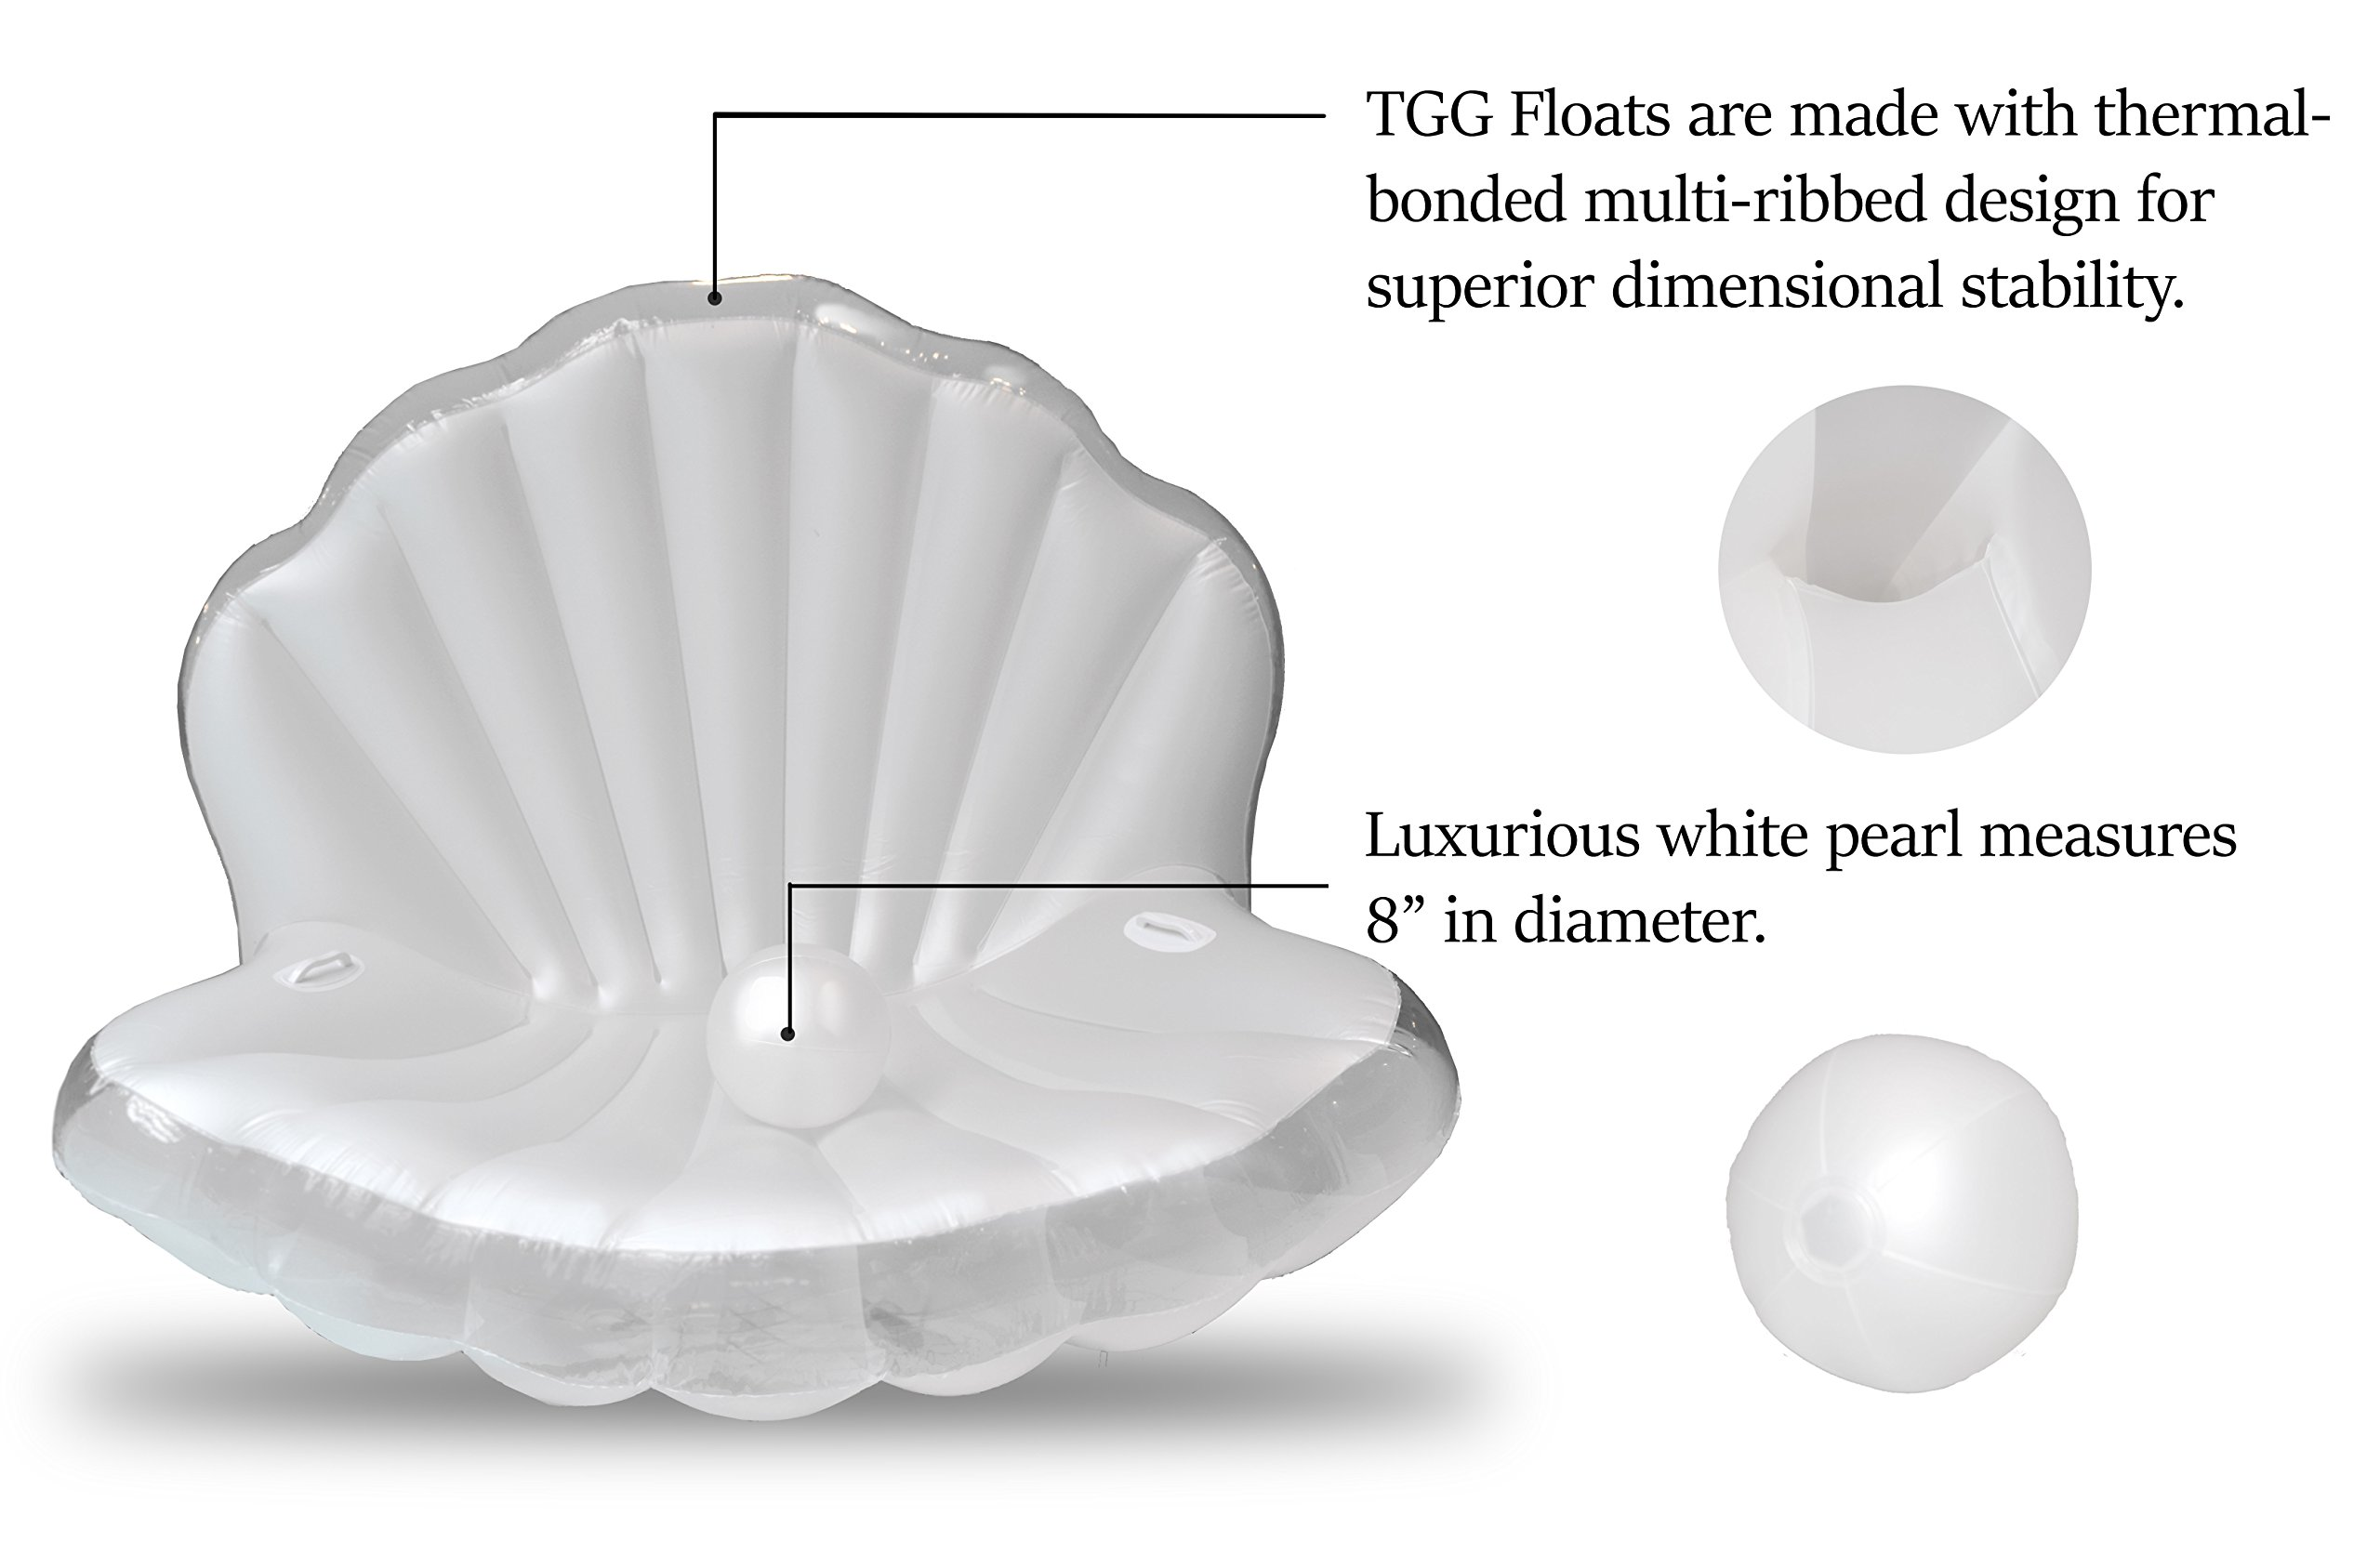 TGG Colossal Sea Shell Pool Float/ Swimming Pool Inflatable Raft 62 x 54 x 54 inches (Pearl White w/ White Handles) by Tgg (Image #6)